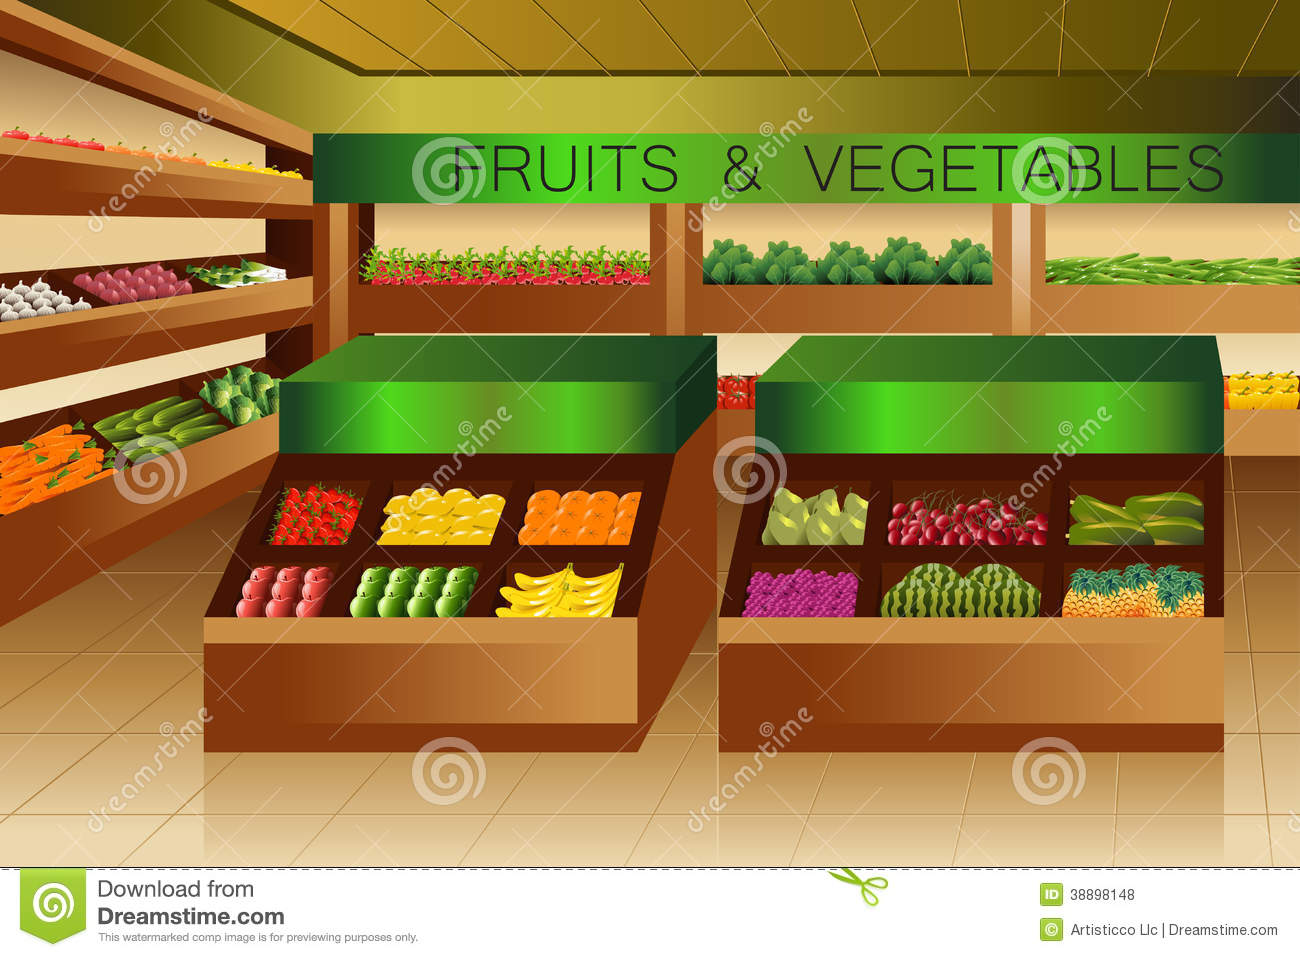 https://thumbs.dreamstime.com/z/grocery-store-fruits-vegetables-section-vector-illustration-38898148.jpg